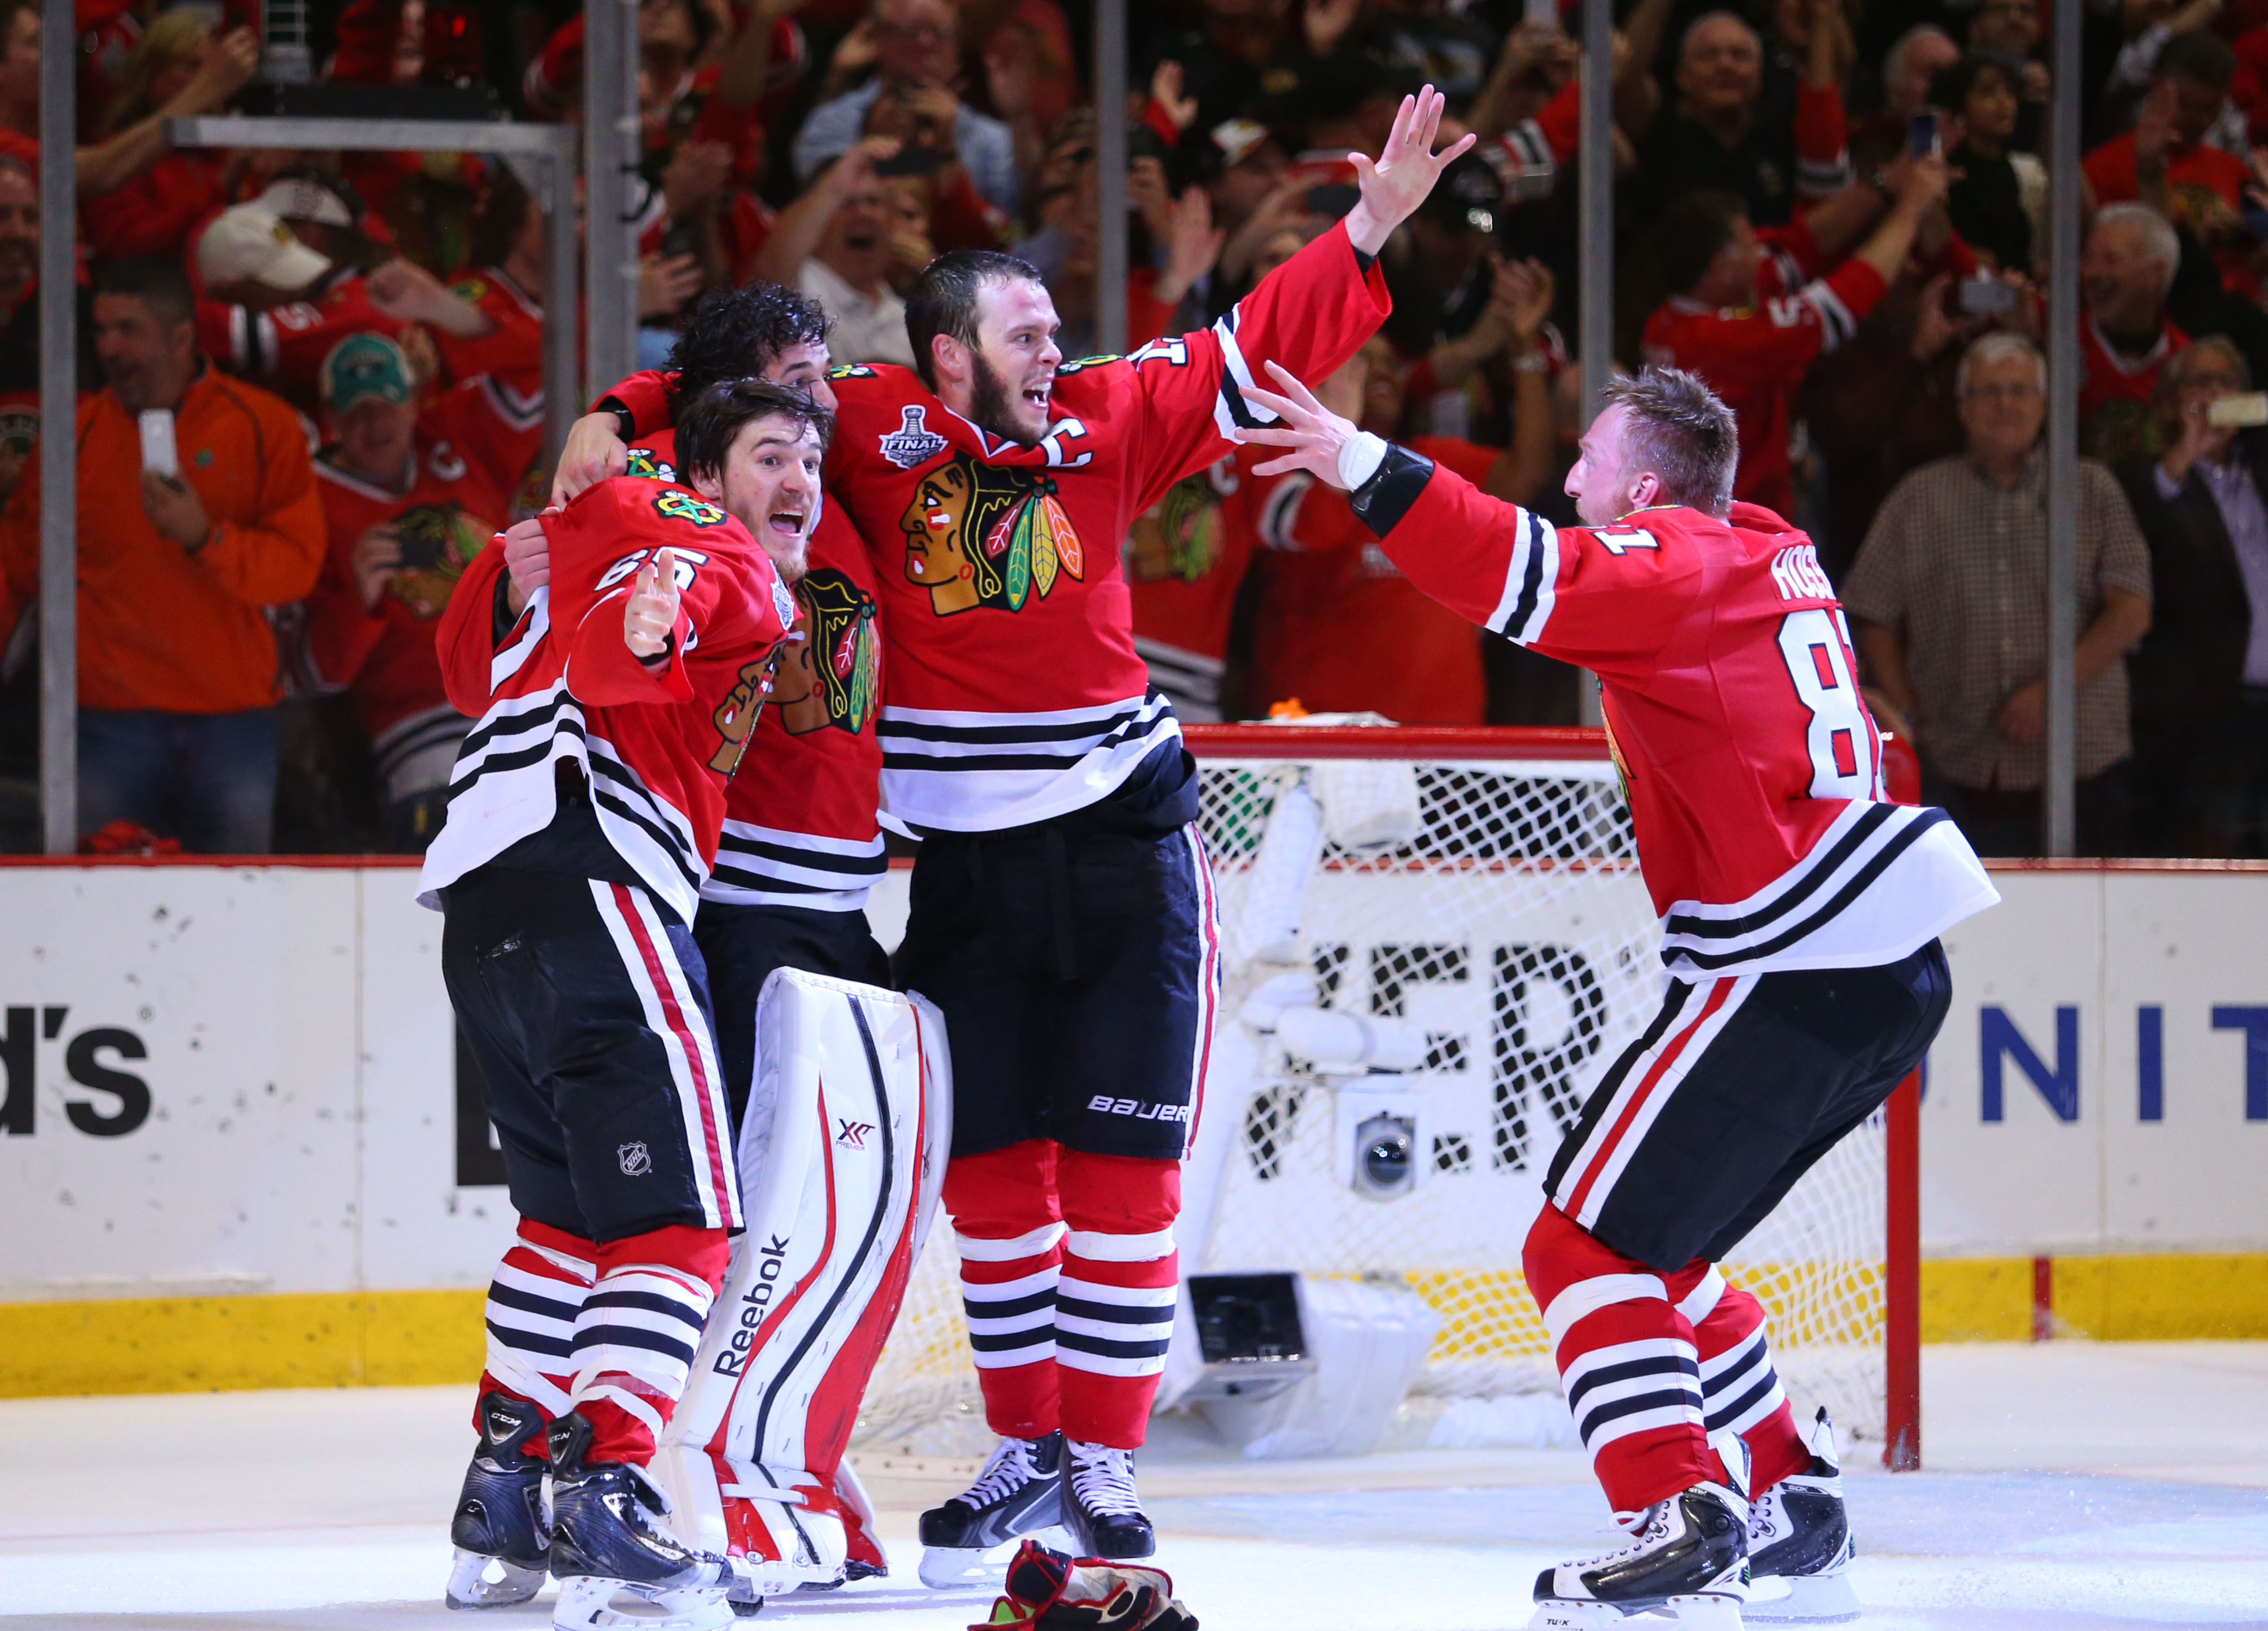 bc9f4ec30fb Chicago Blackhawks take Stanley Cup 2-0 in historic win - CBS News